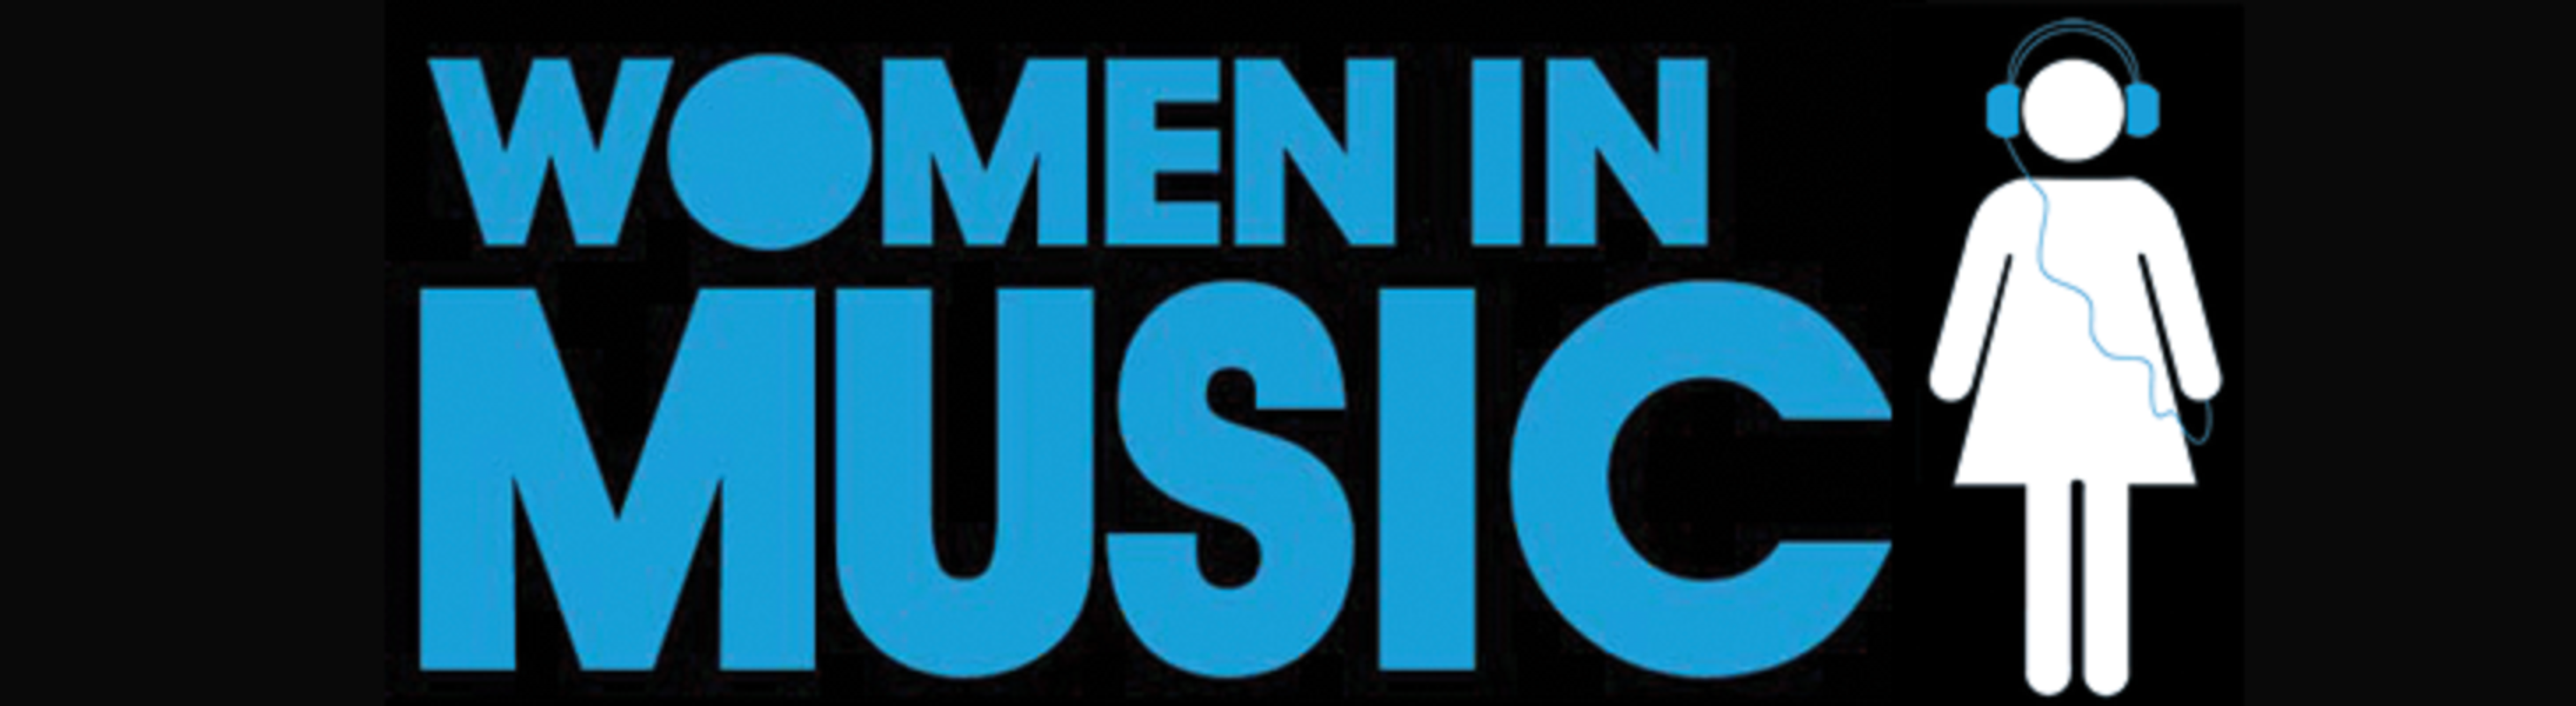 Women In Music Announce Diversity & Inclusion Council And 2020 Global Event Series